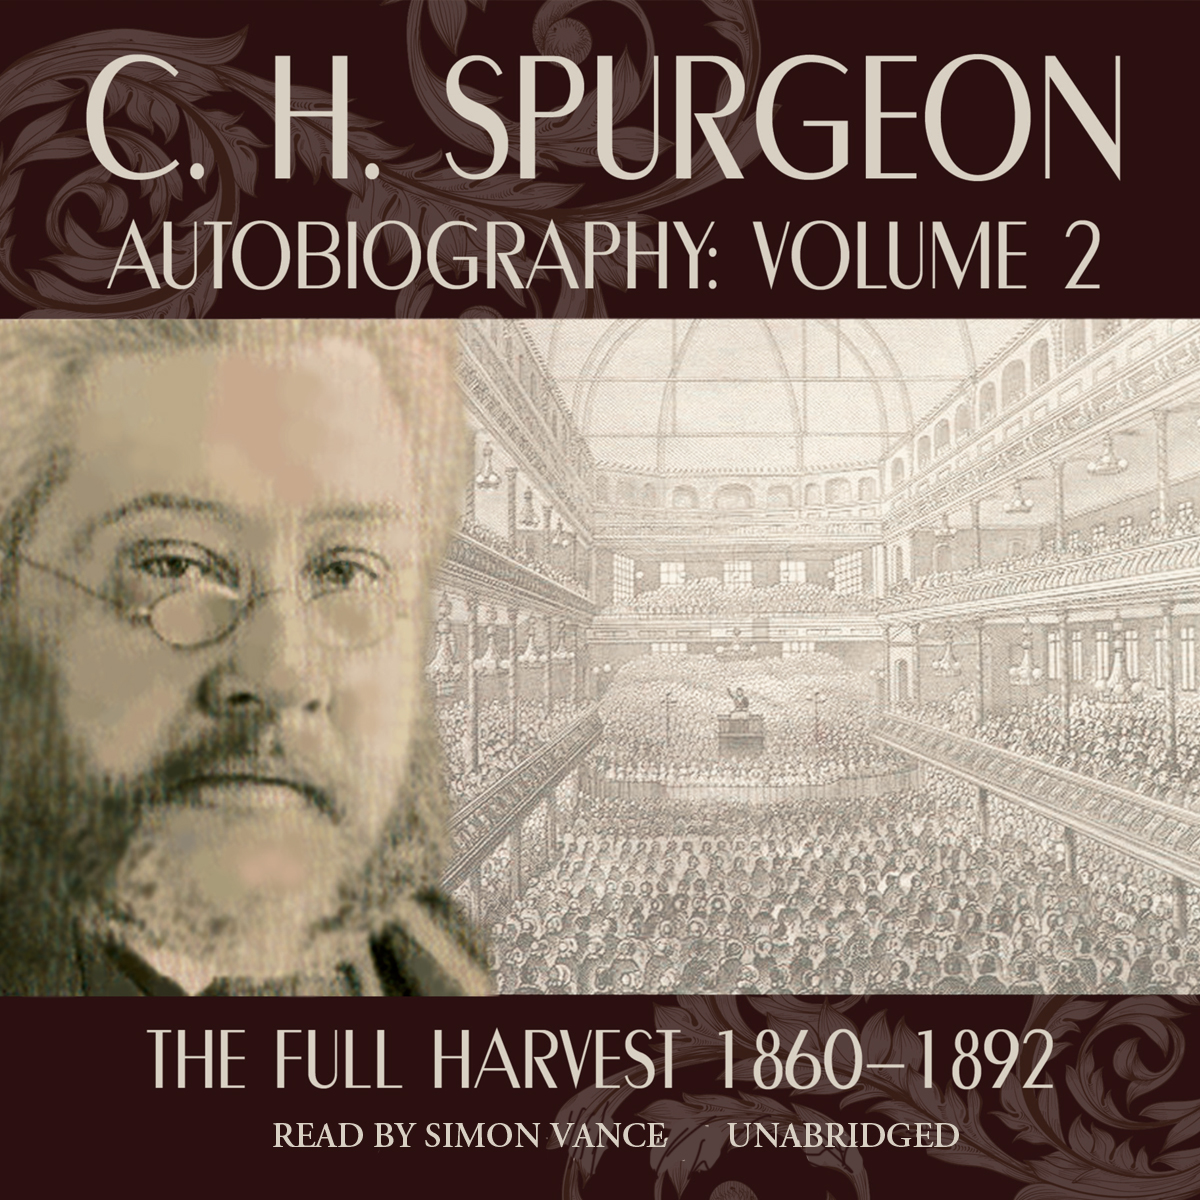 Printable C. H. Spurgeon Autobiography, Vol. 2: The Full Harvest, 1860–1892 Audiobook Cover Art